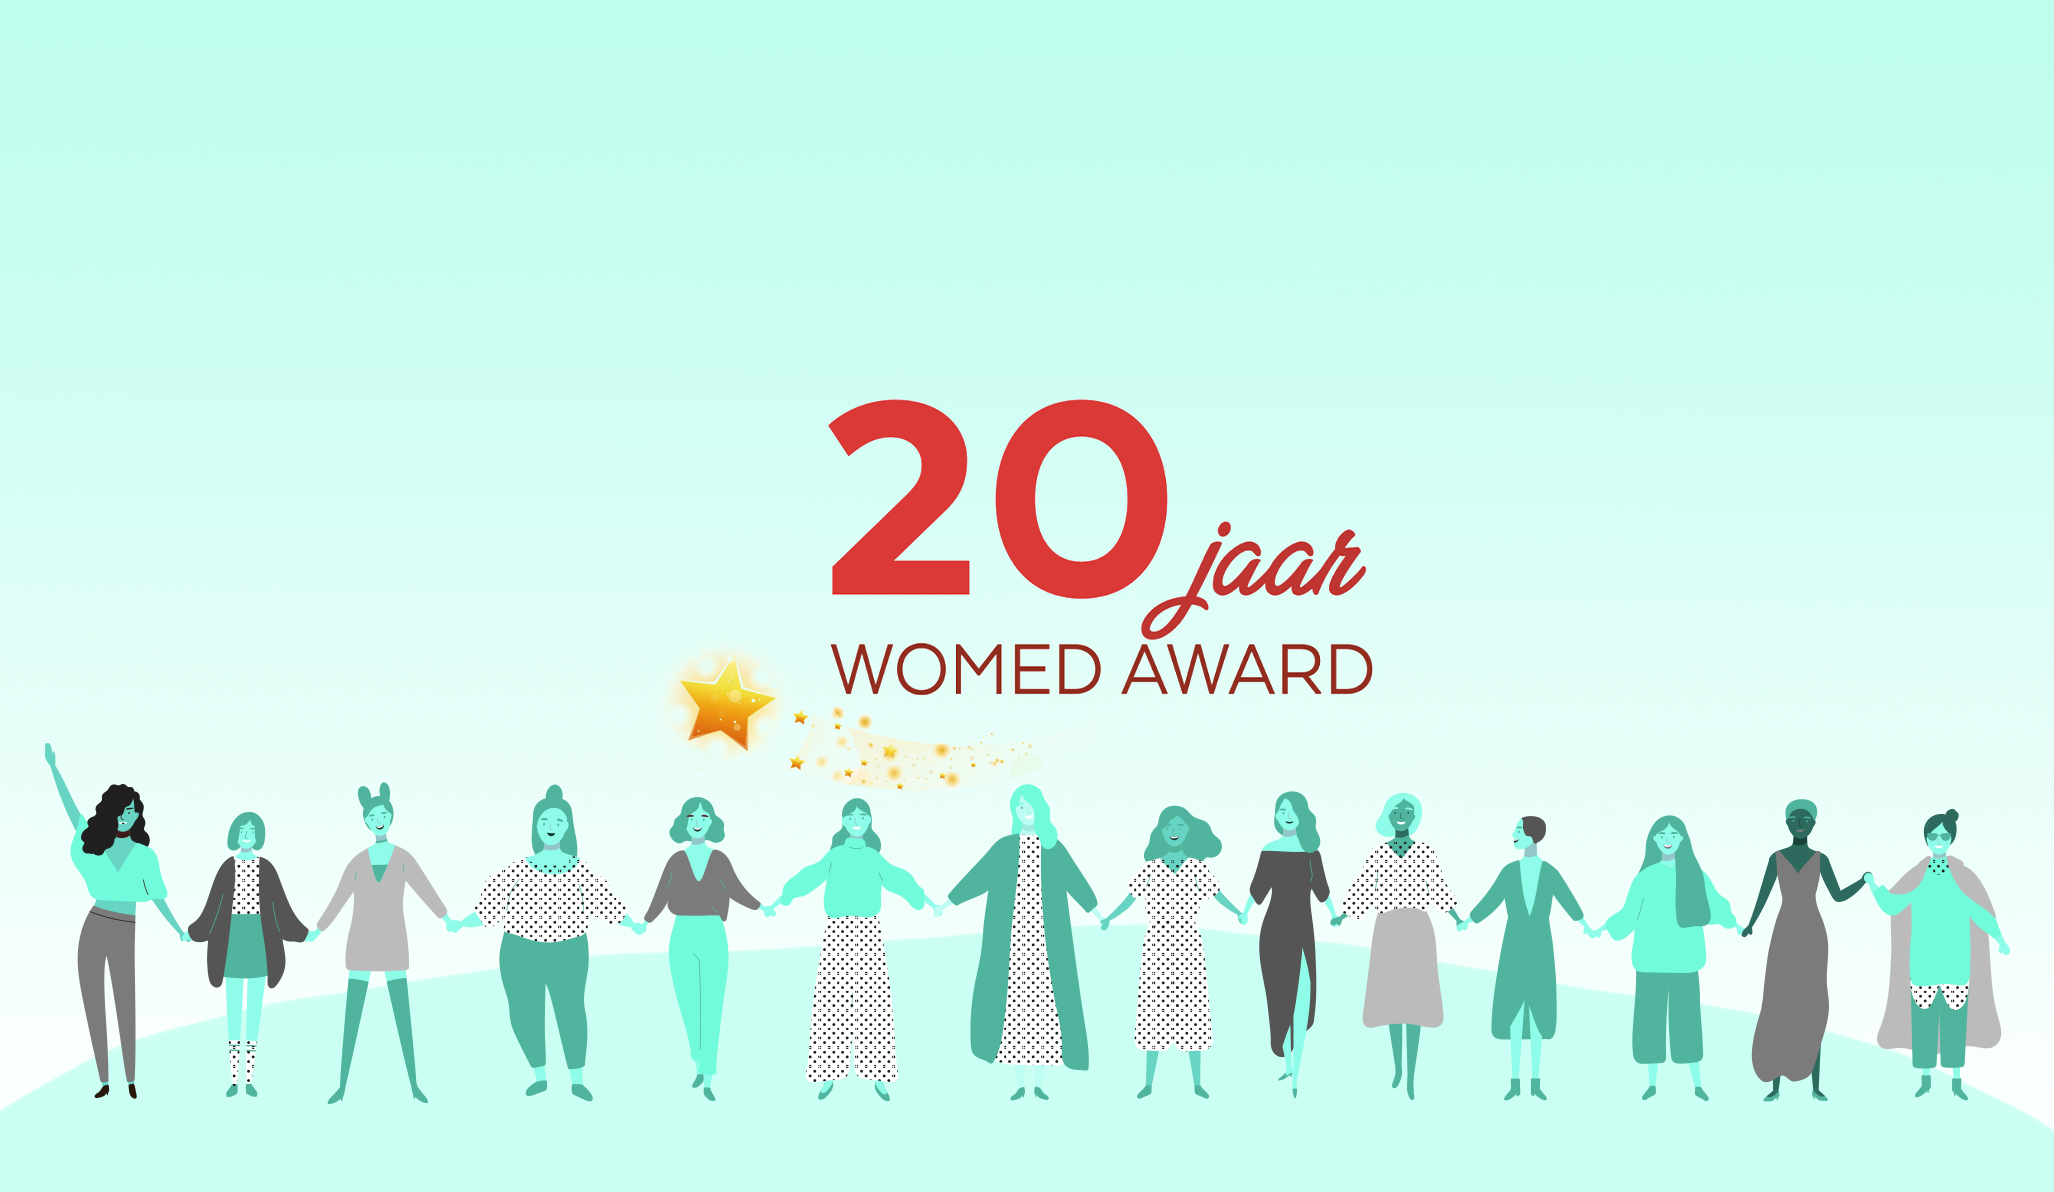 20 jaar WOMED award